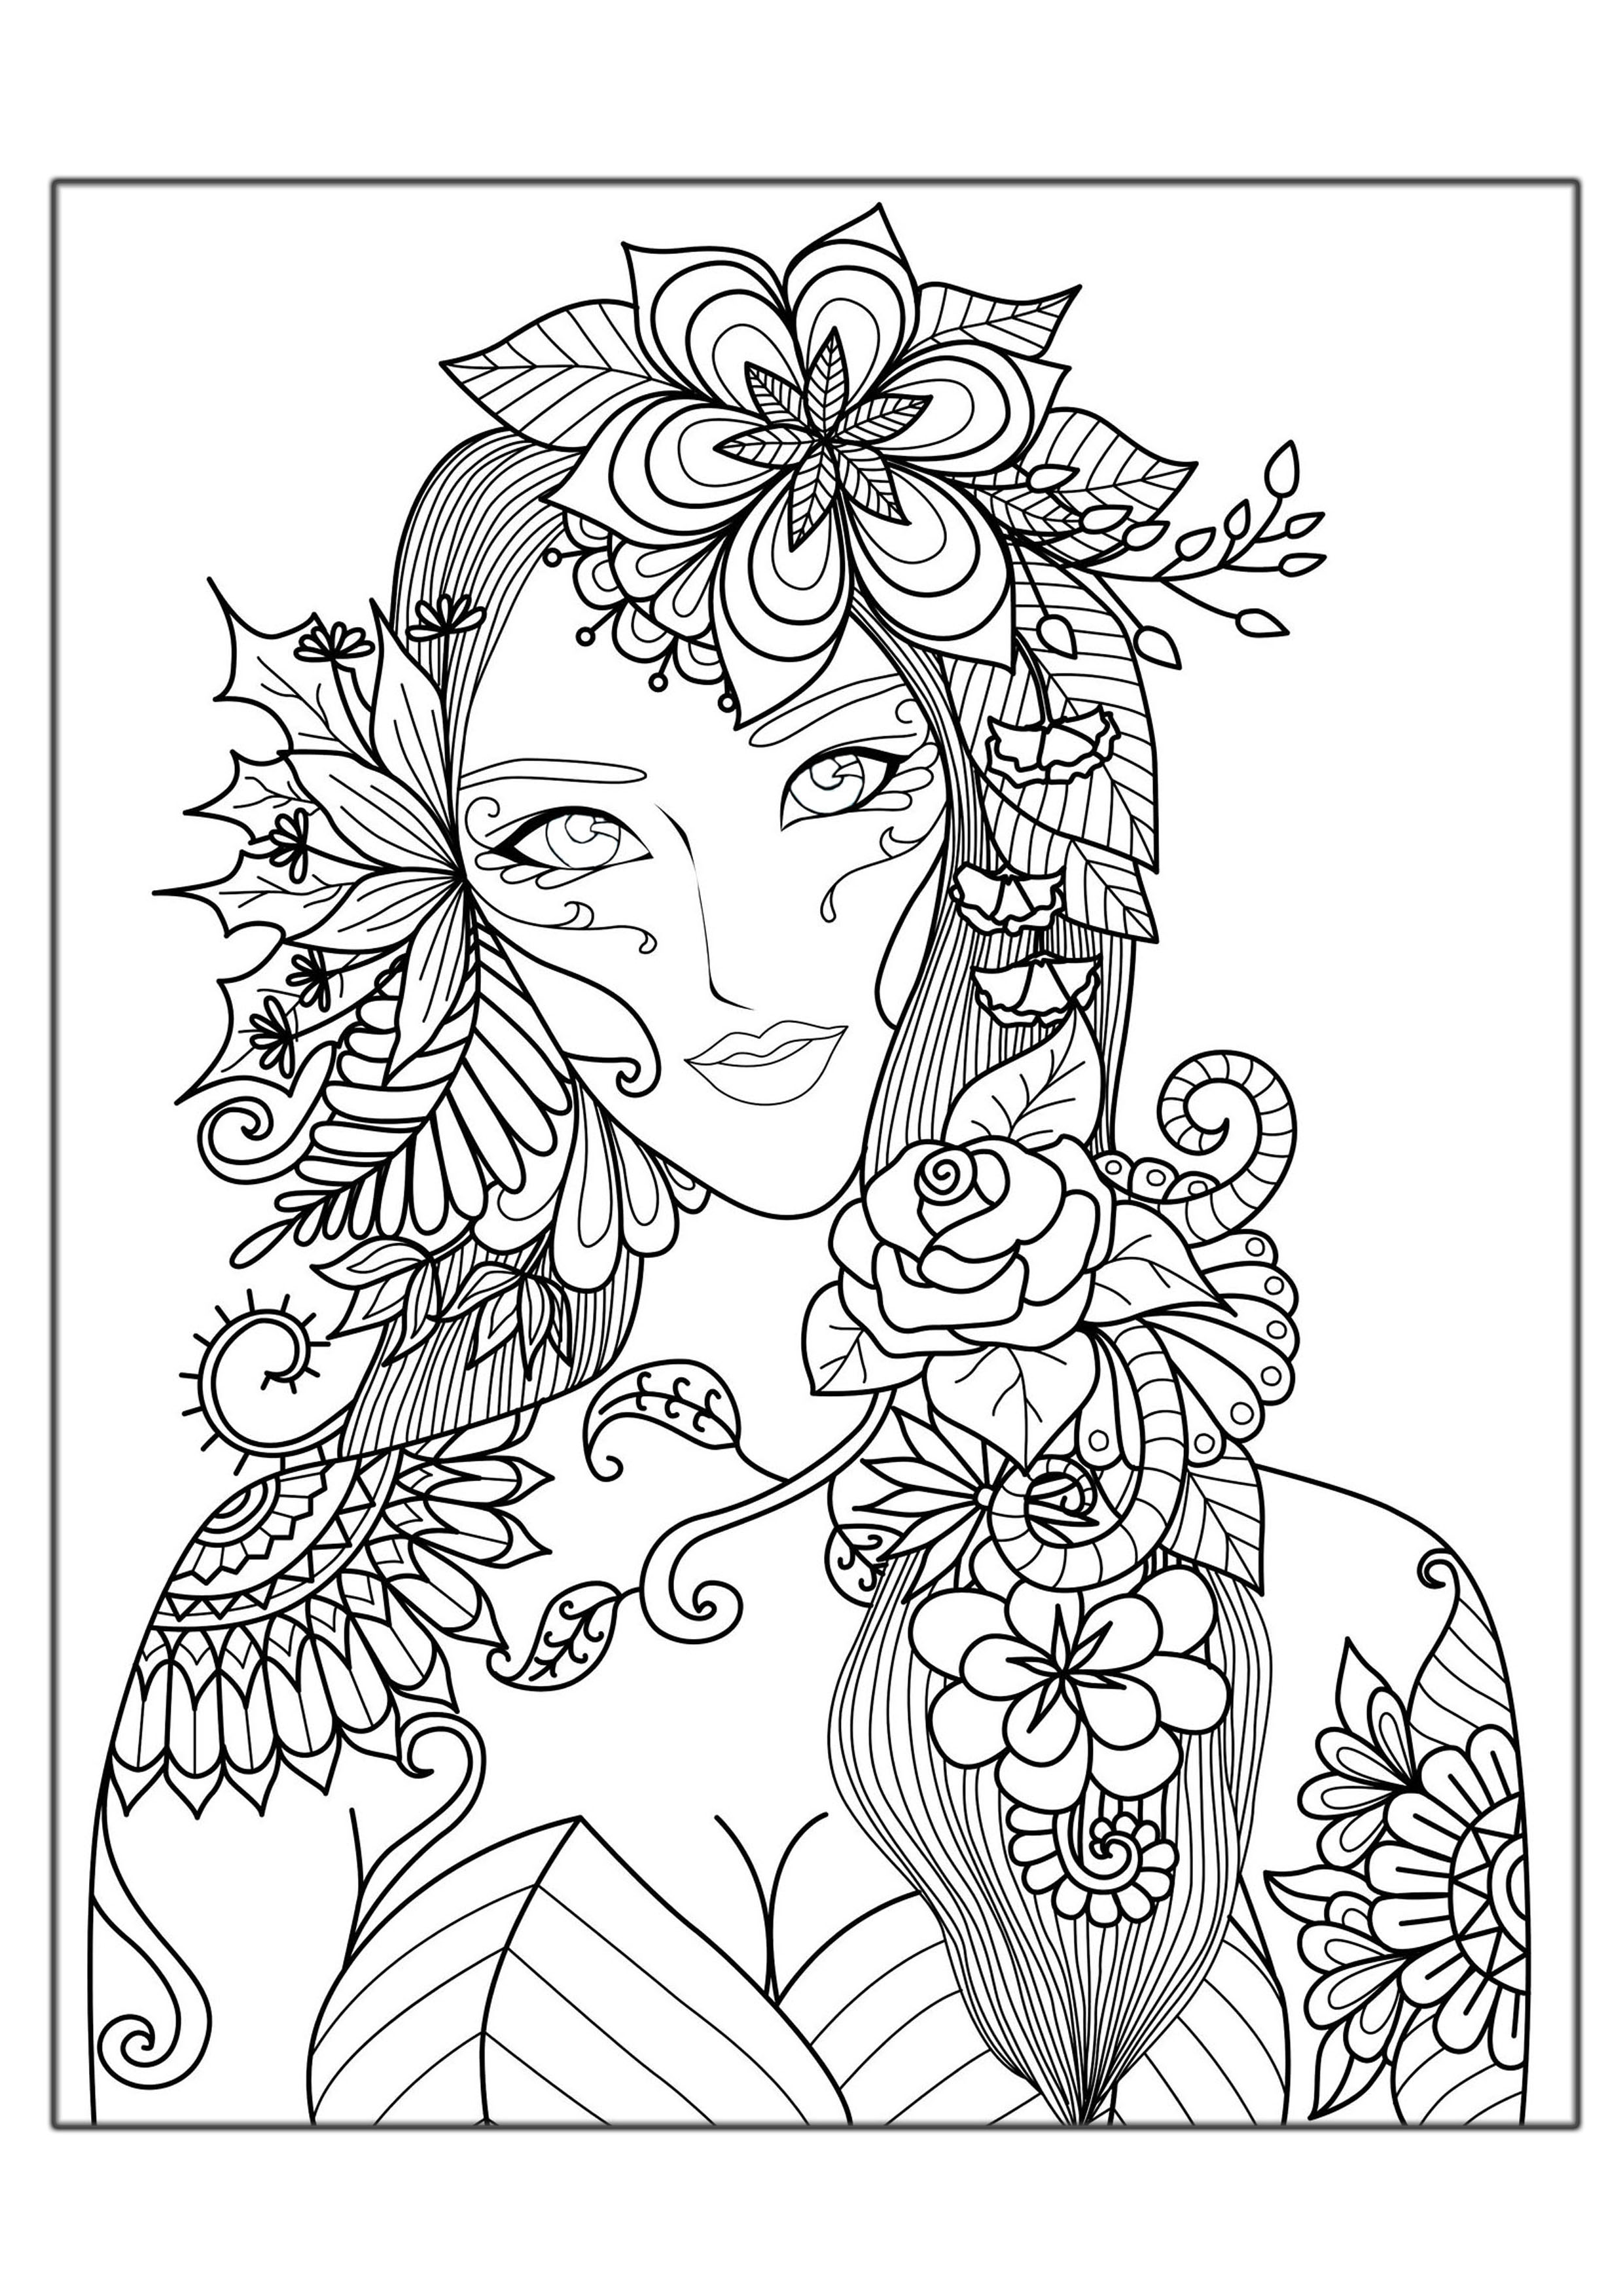 coloring pages for adults printable hard coloring pages for adults best coloring pages for kids adults for pages printable coloring